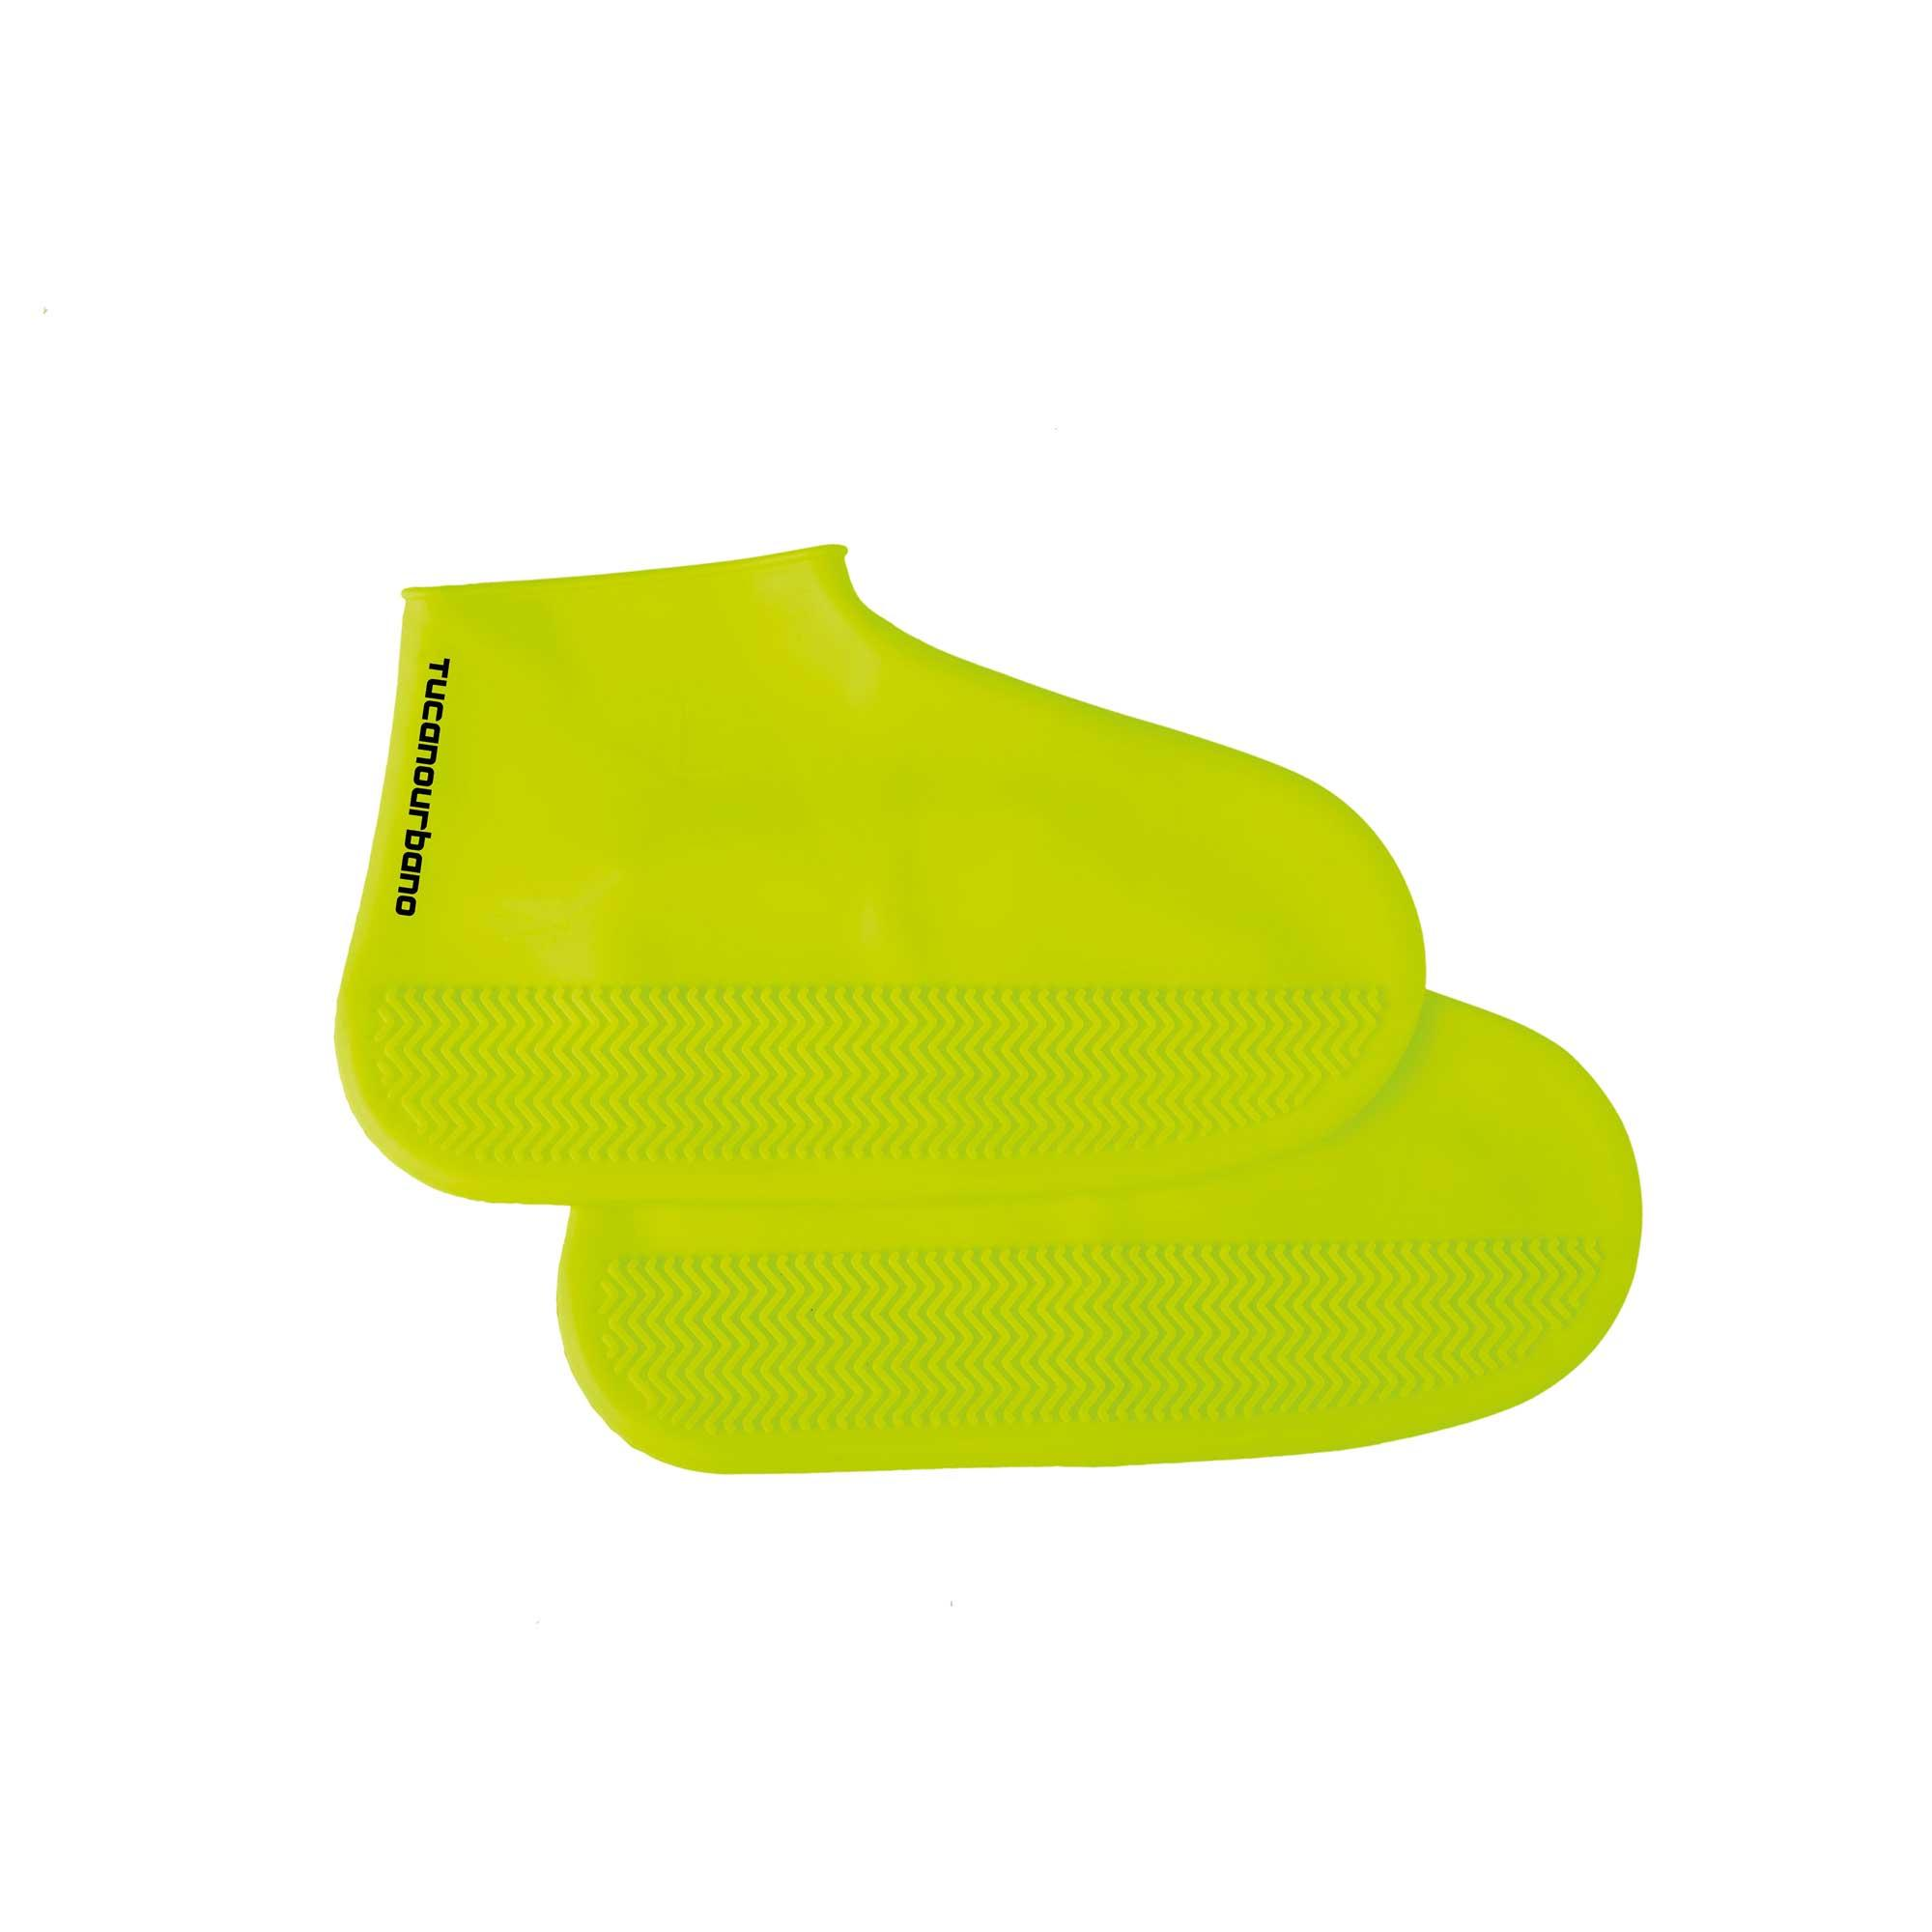 Footerine Giallo Fluo